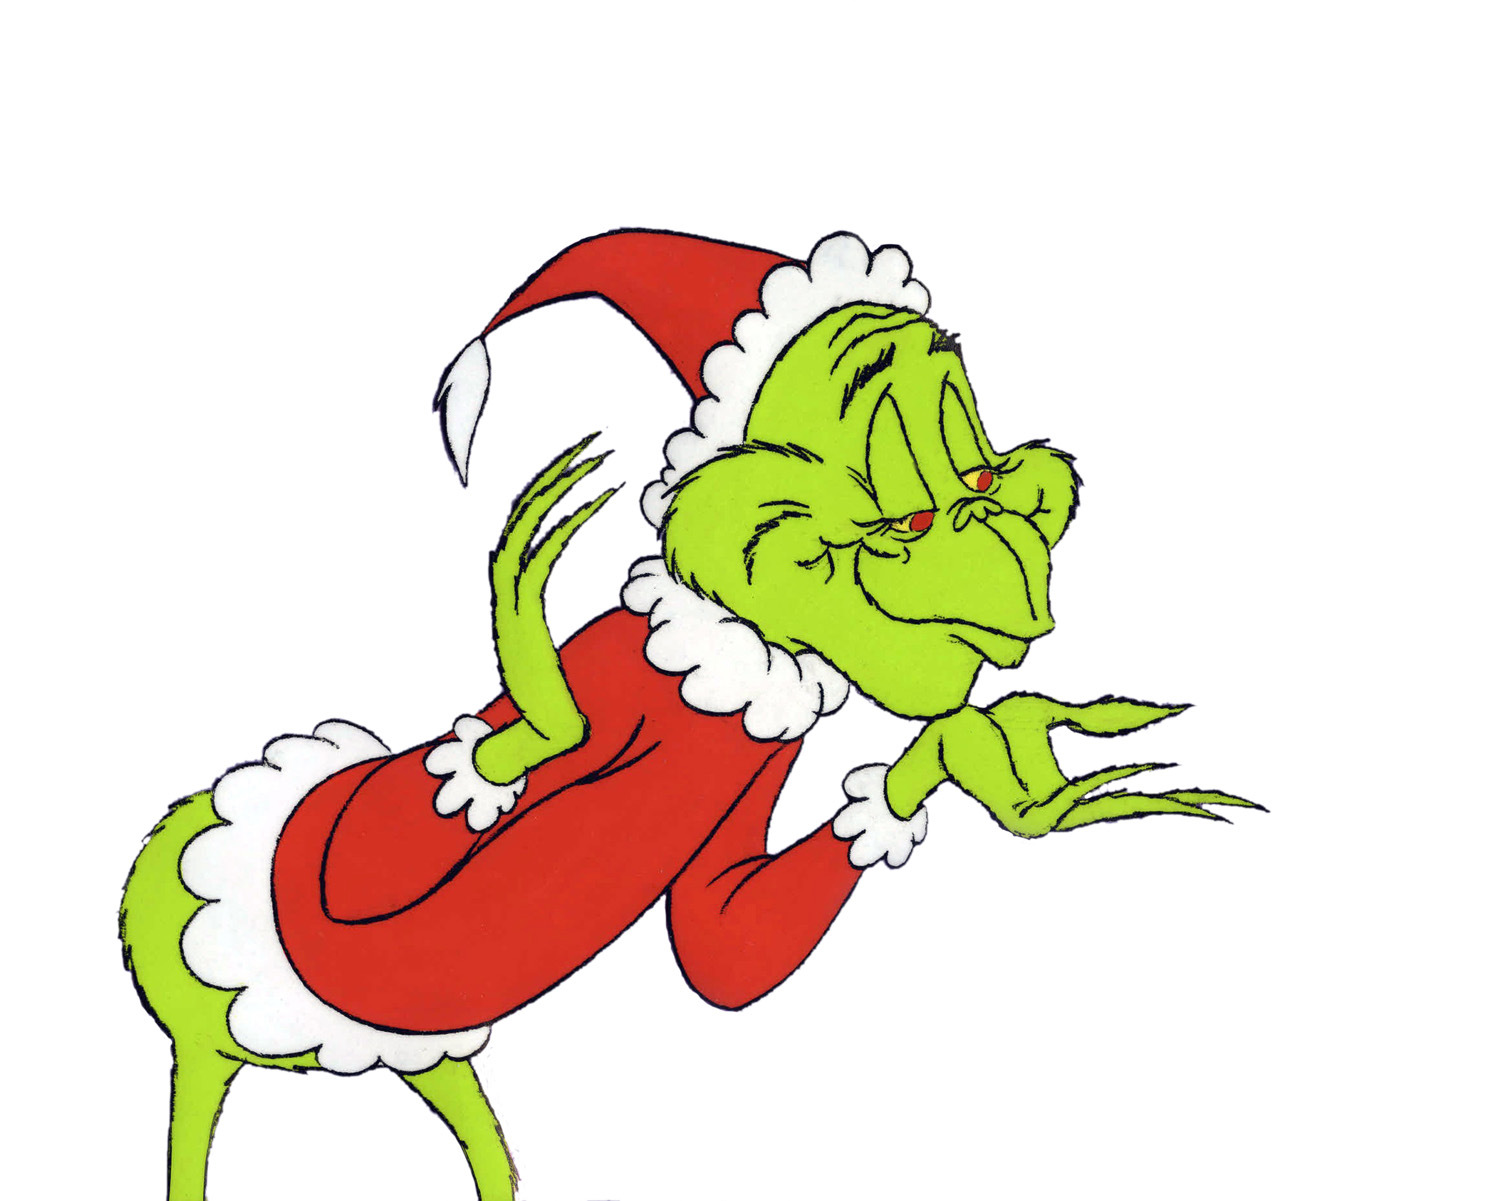 The Grinch Clip Art Pix For > The Grinch Who Stole Christmas Book Characters